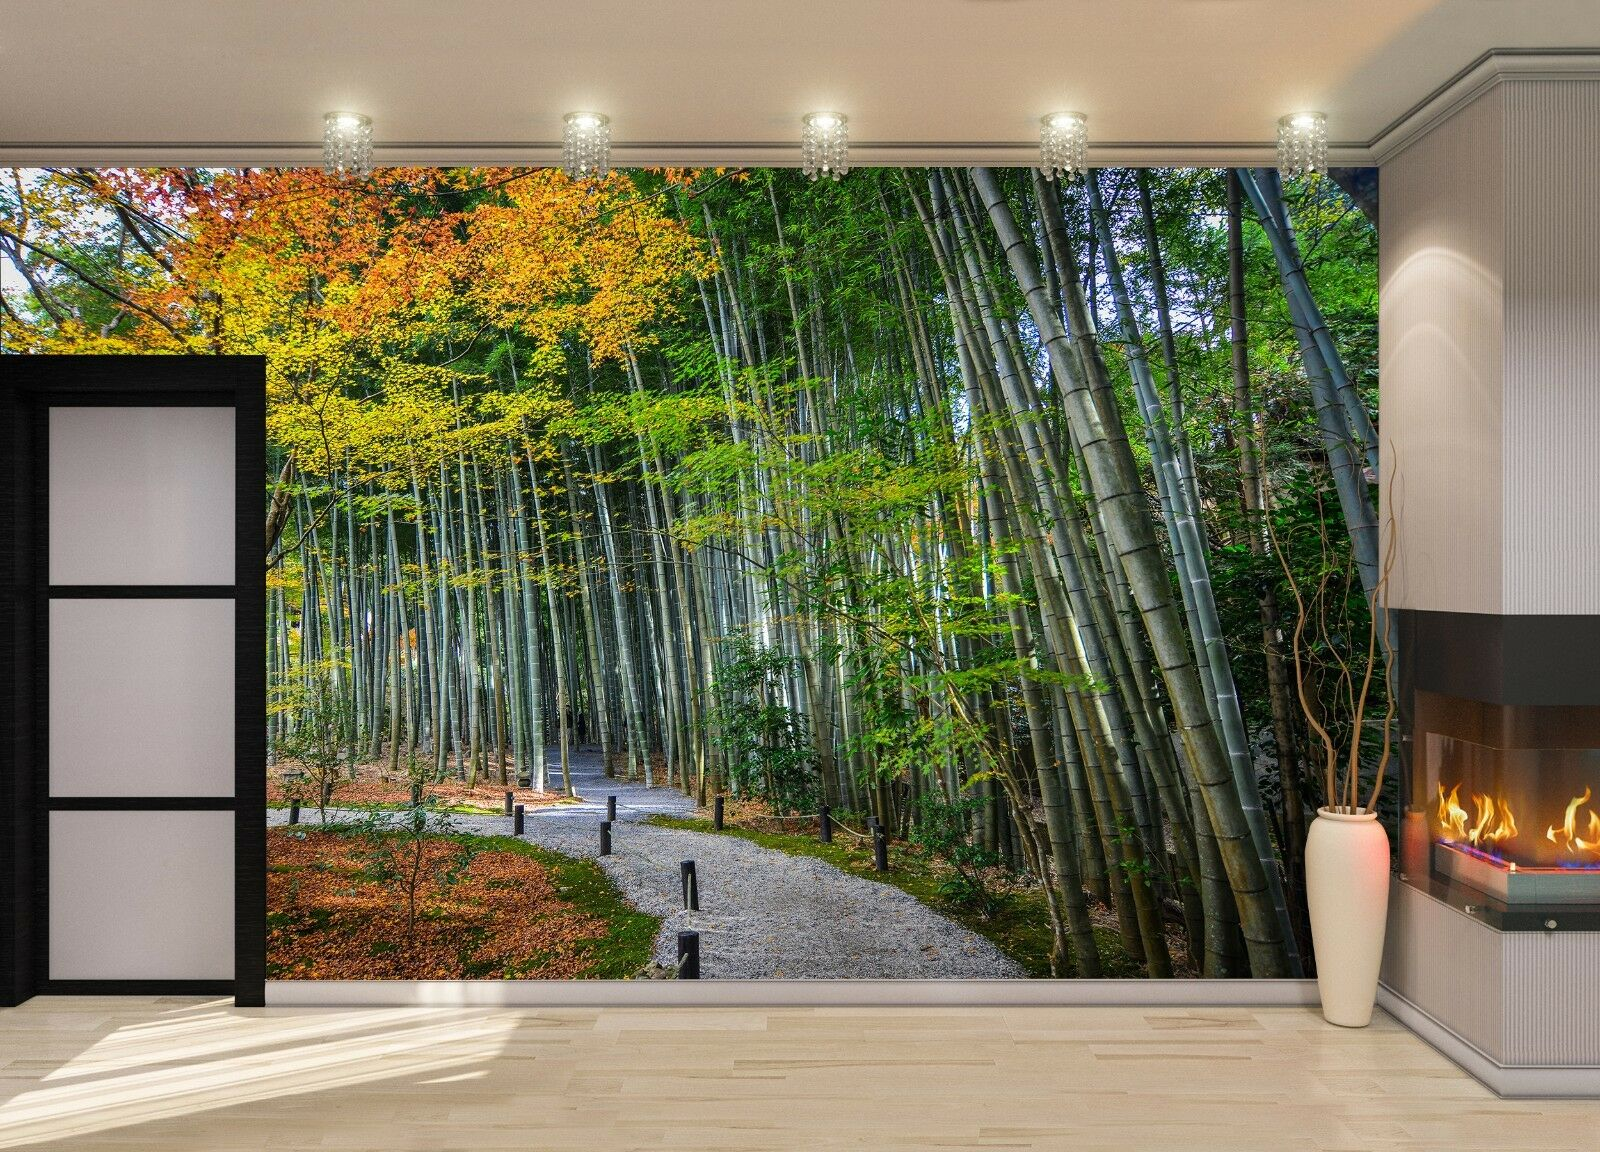 Autumn scenery-Japan  Photo Wallpaper Wall Mural DECOR Paper Poster Free Paste